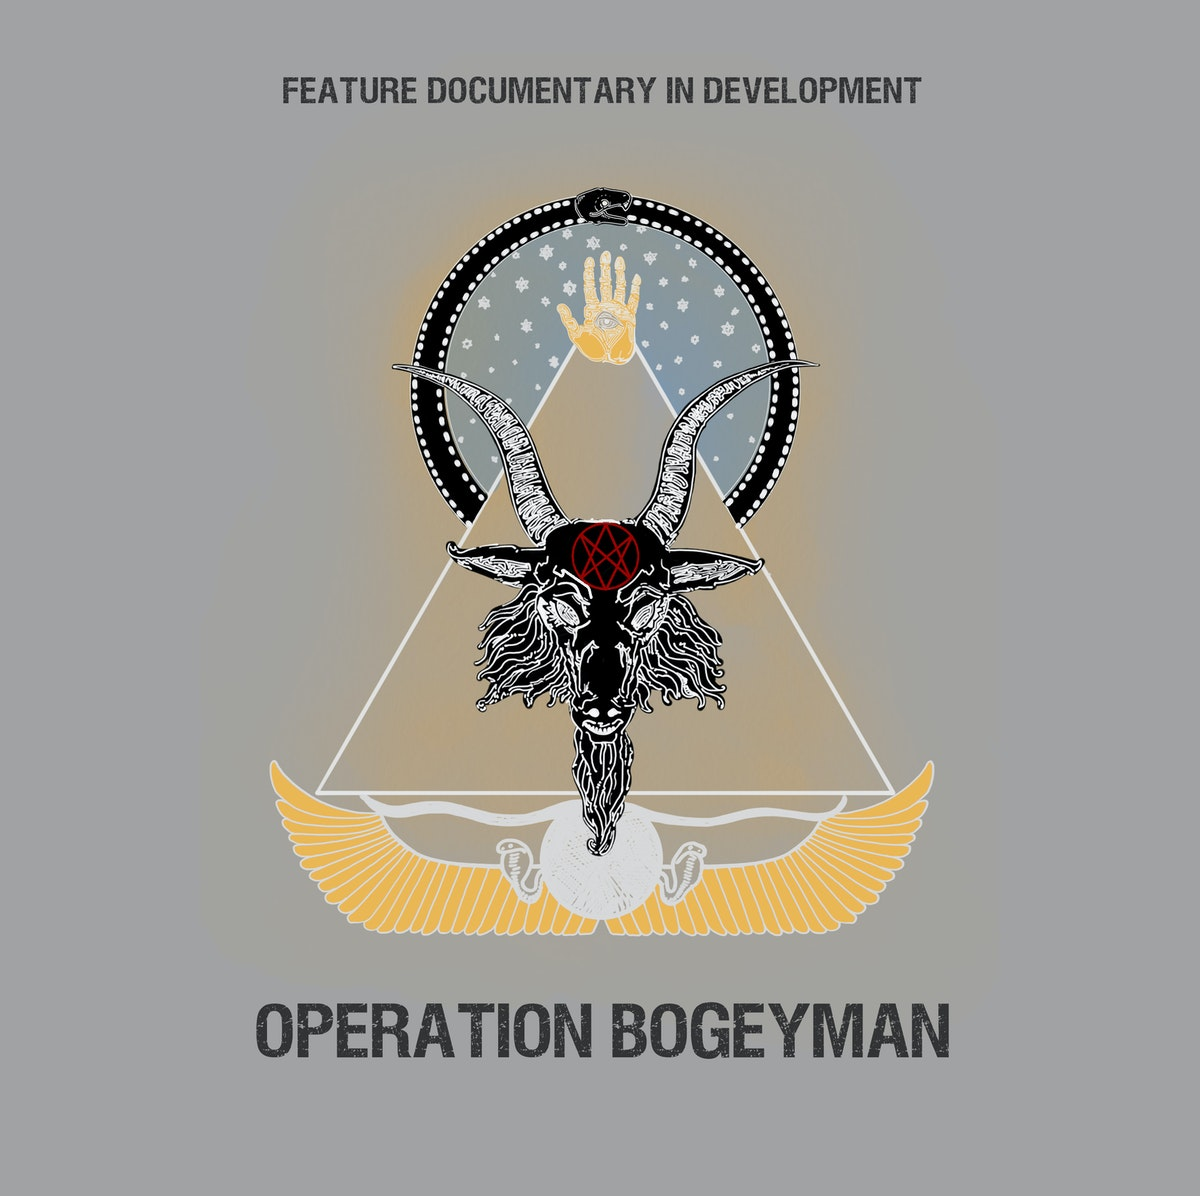 Operation Bogeyman - Sketch 43_01_W_FEATURE DOC_03